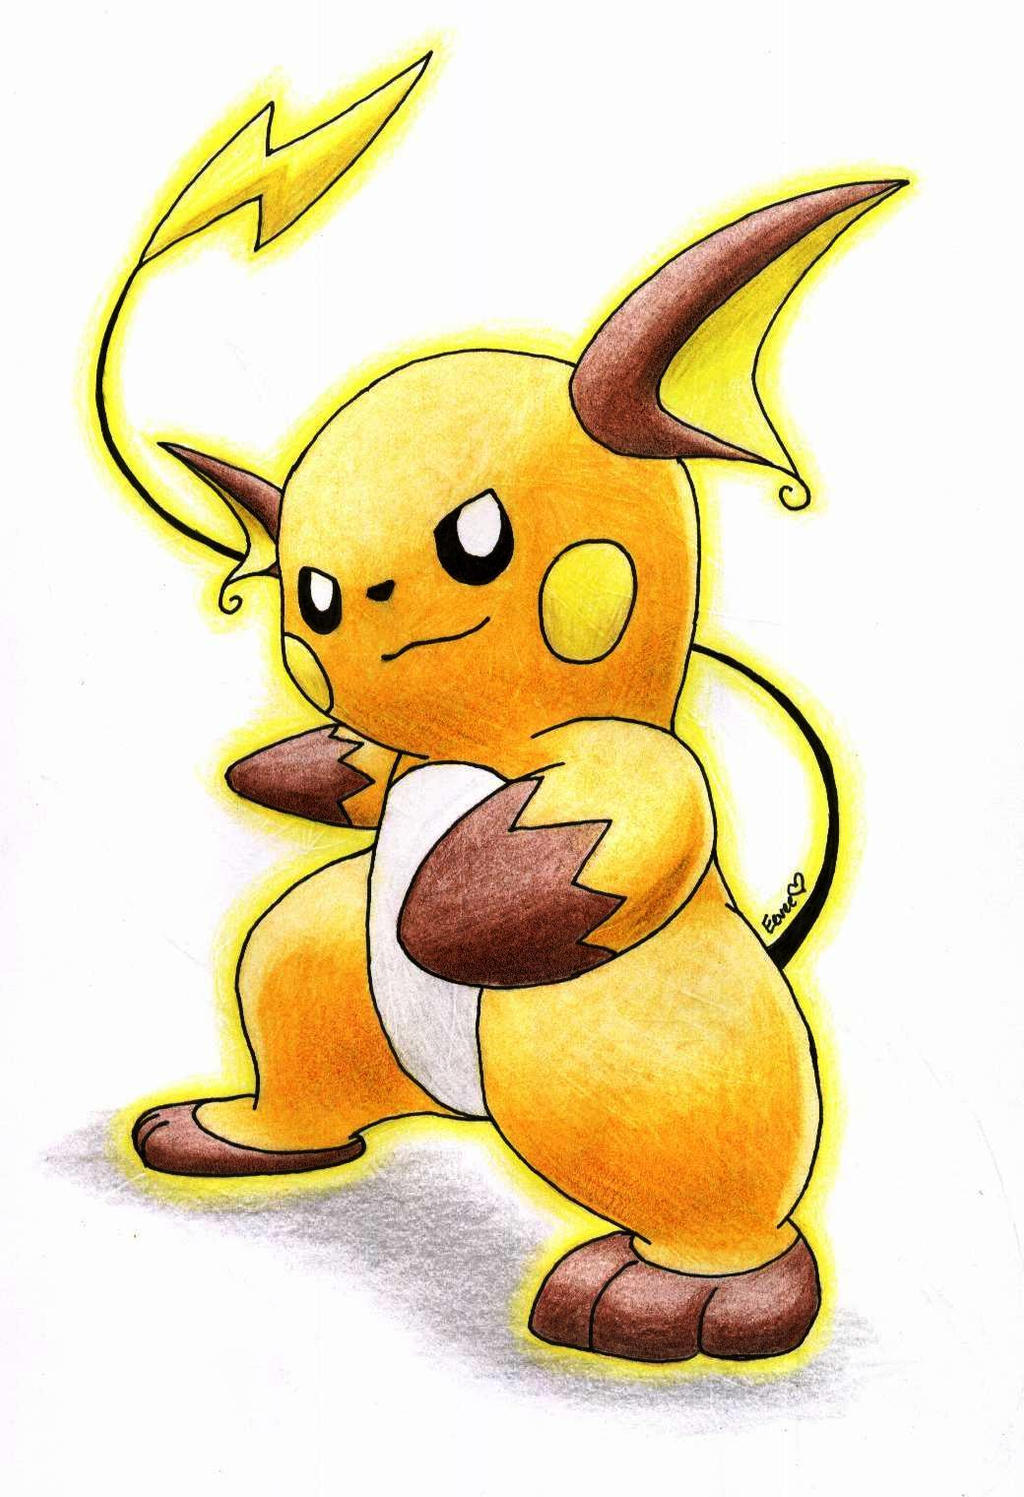 Raichu by Chibi-pokemon-draws on DeviantArt